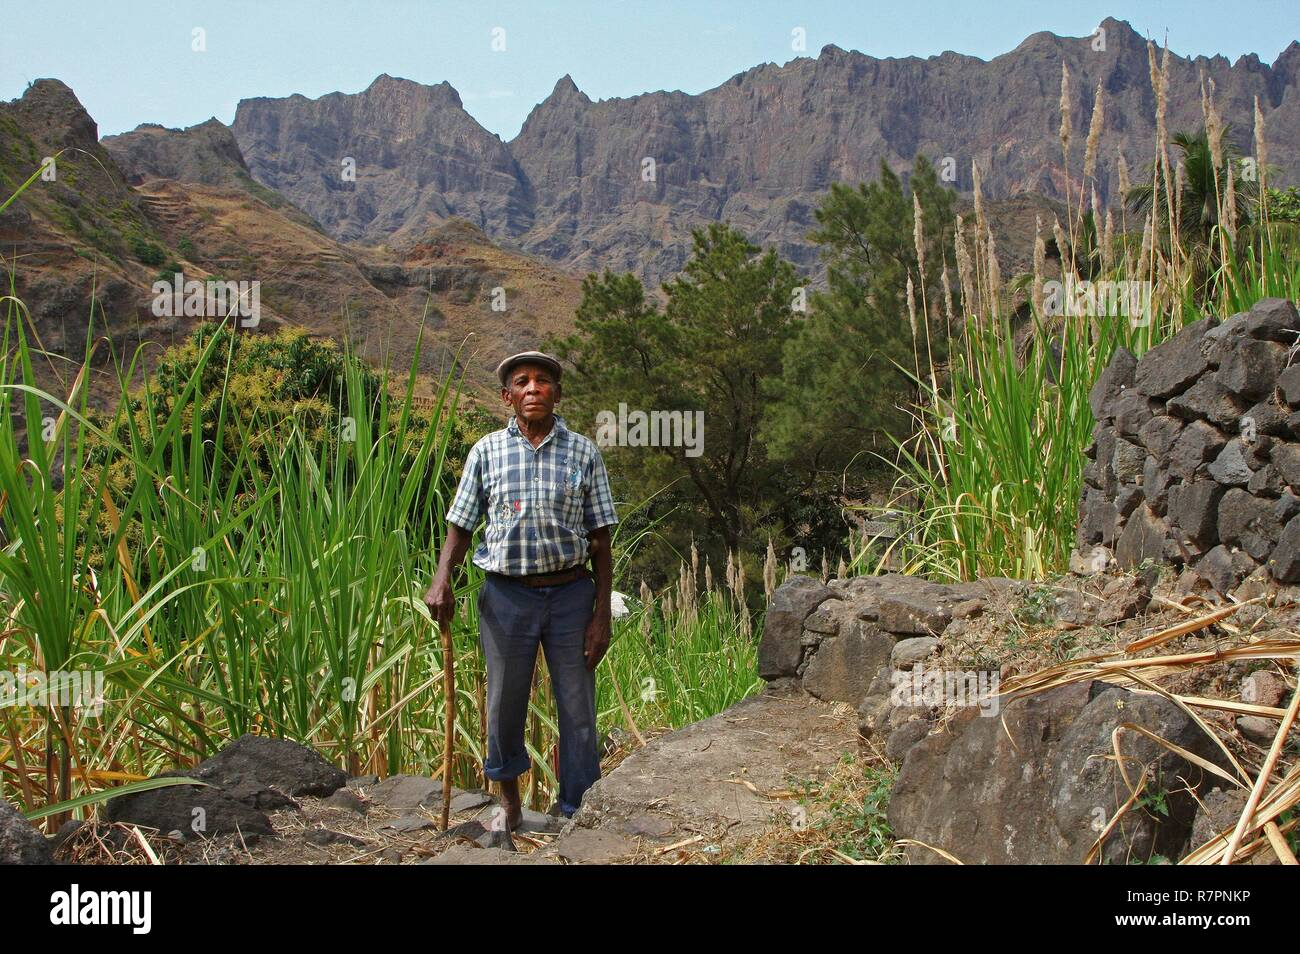 Cape Verde, Santo Antao, Coculi, Grandpa wearing cap on a mountain trail, in the middle of the cane fields - Stock Image